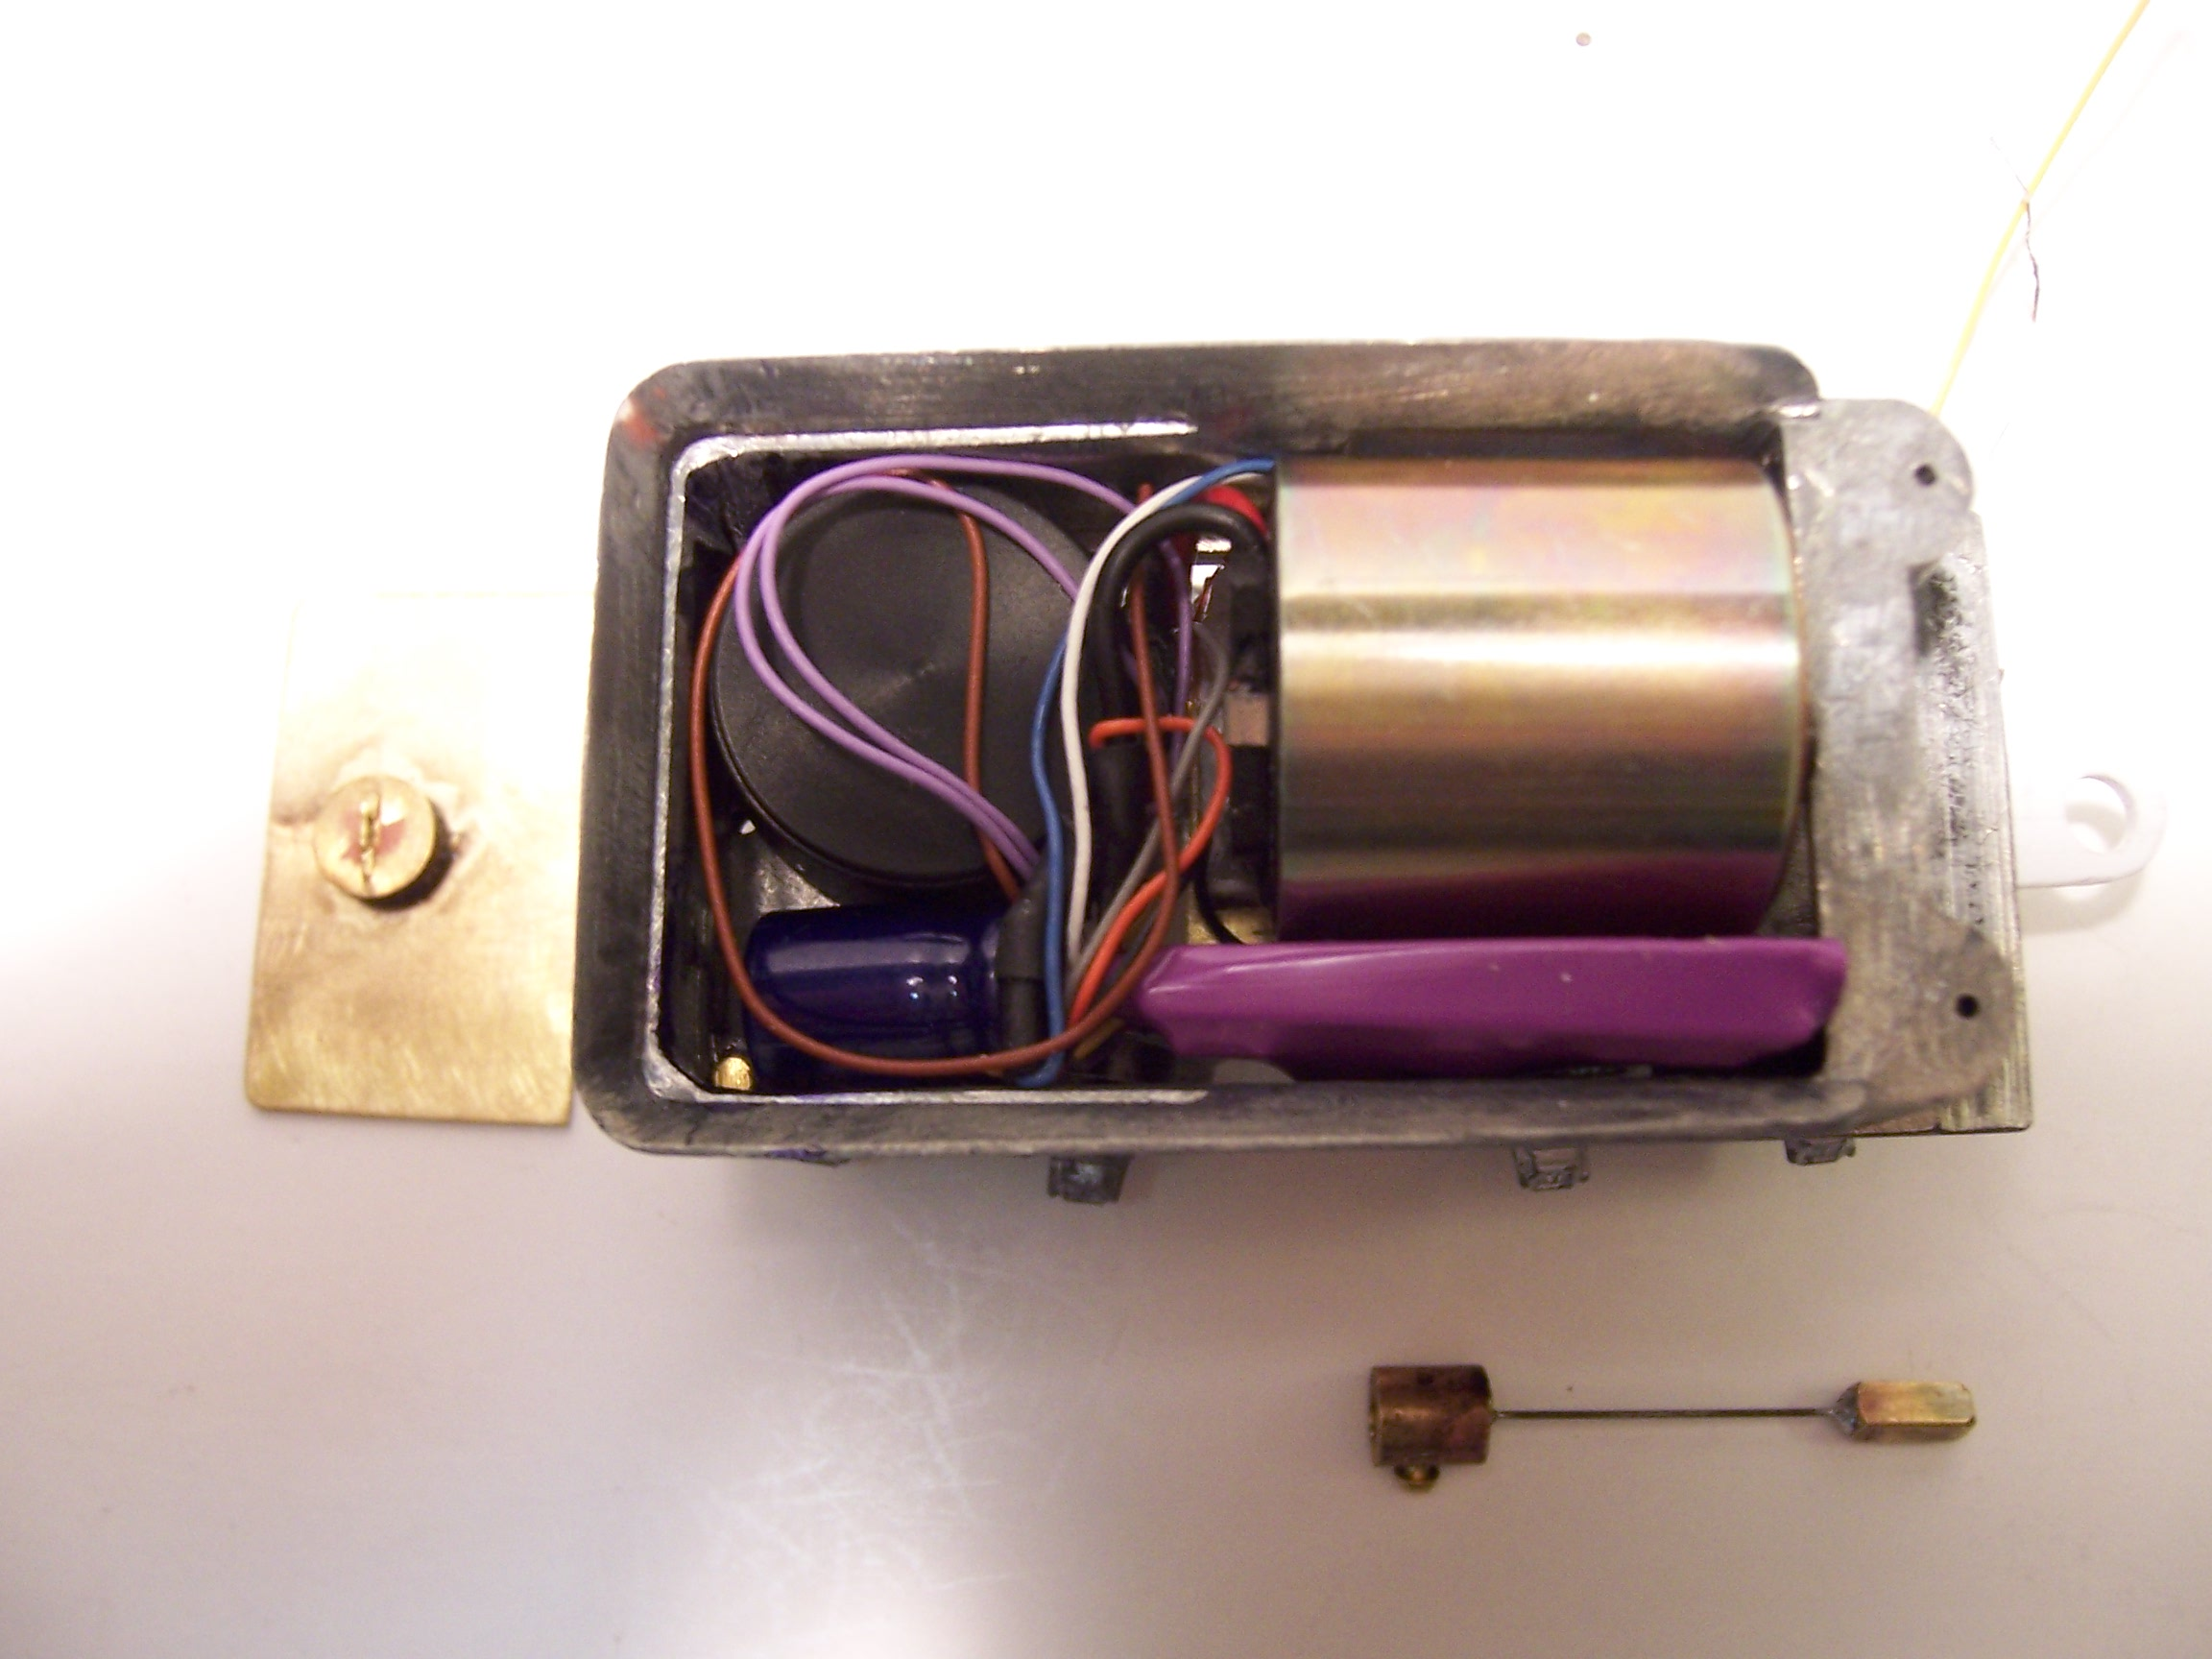 Motor, DCC Controller and Speaker in the tender